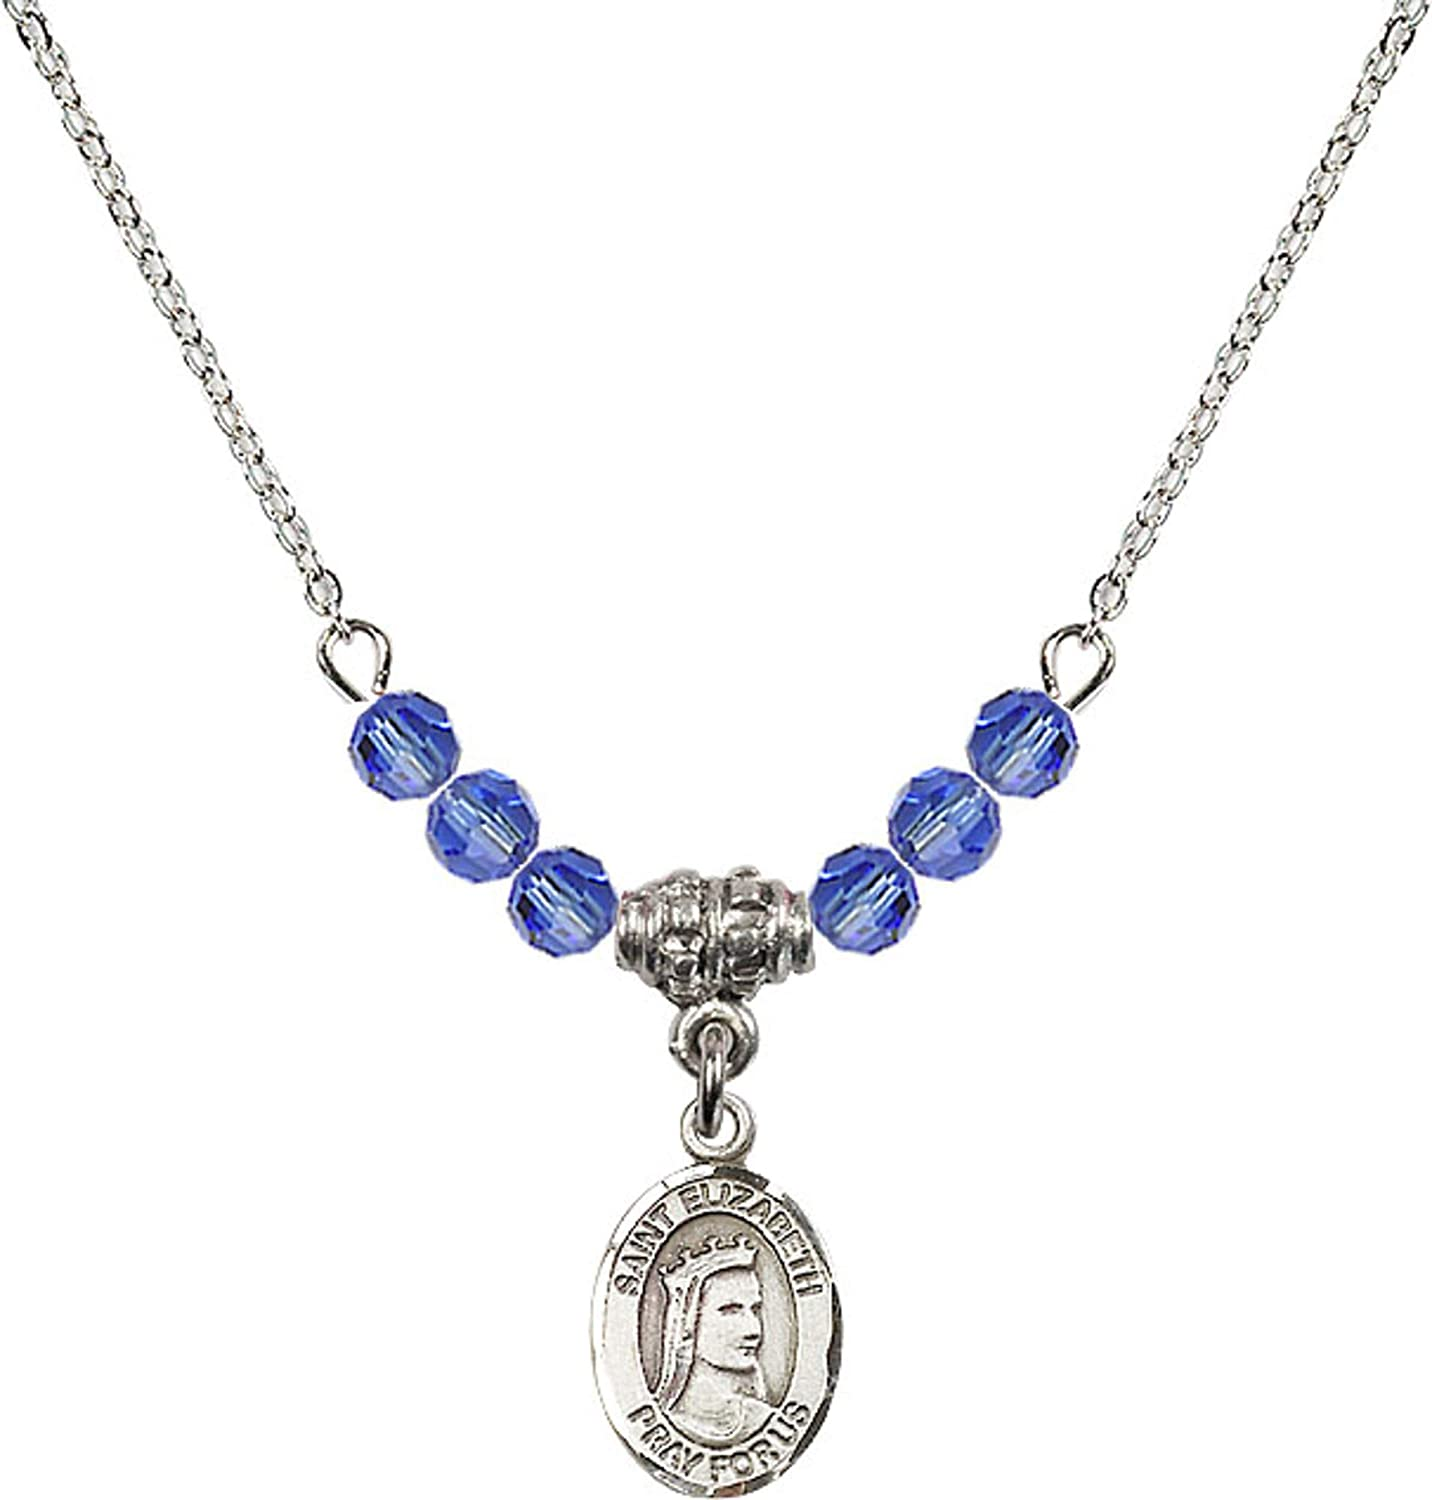 Bonyak Jewelry 18 Inch Rhodium Plated Necklace w// 4mm Blue September Birth Month Stone Beads and Saint Elizabeth of Hungary Charm